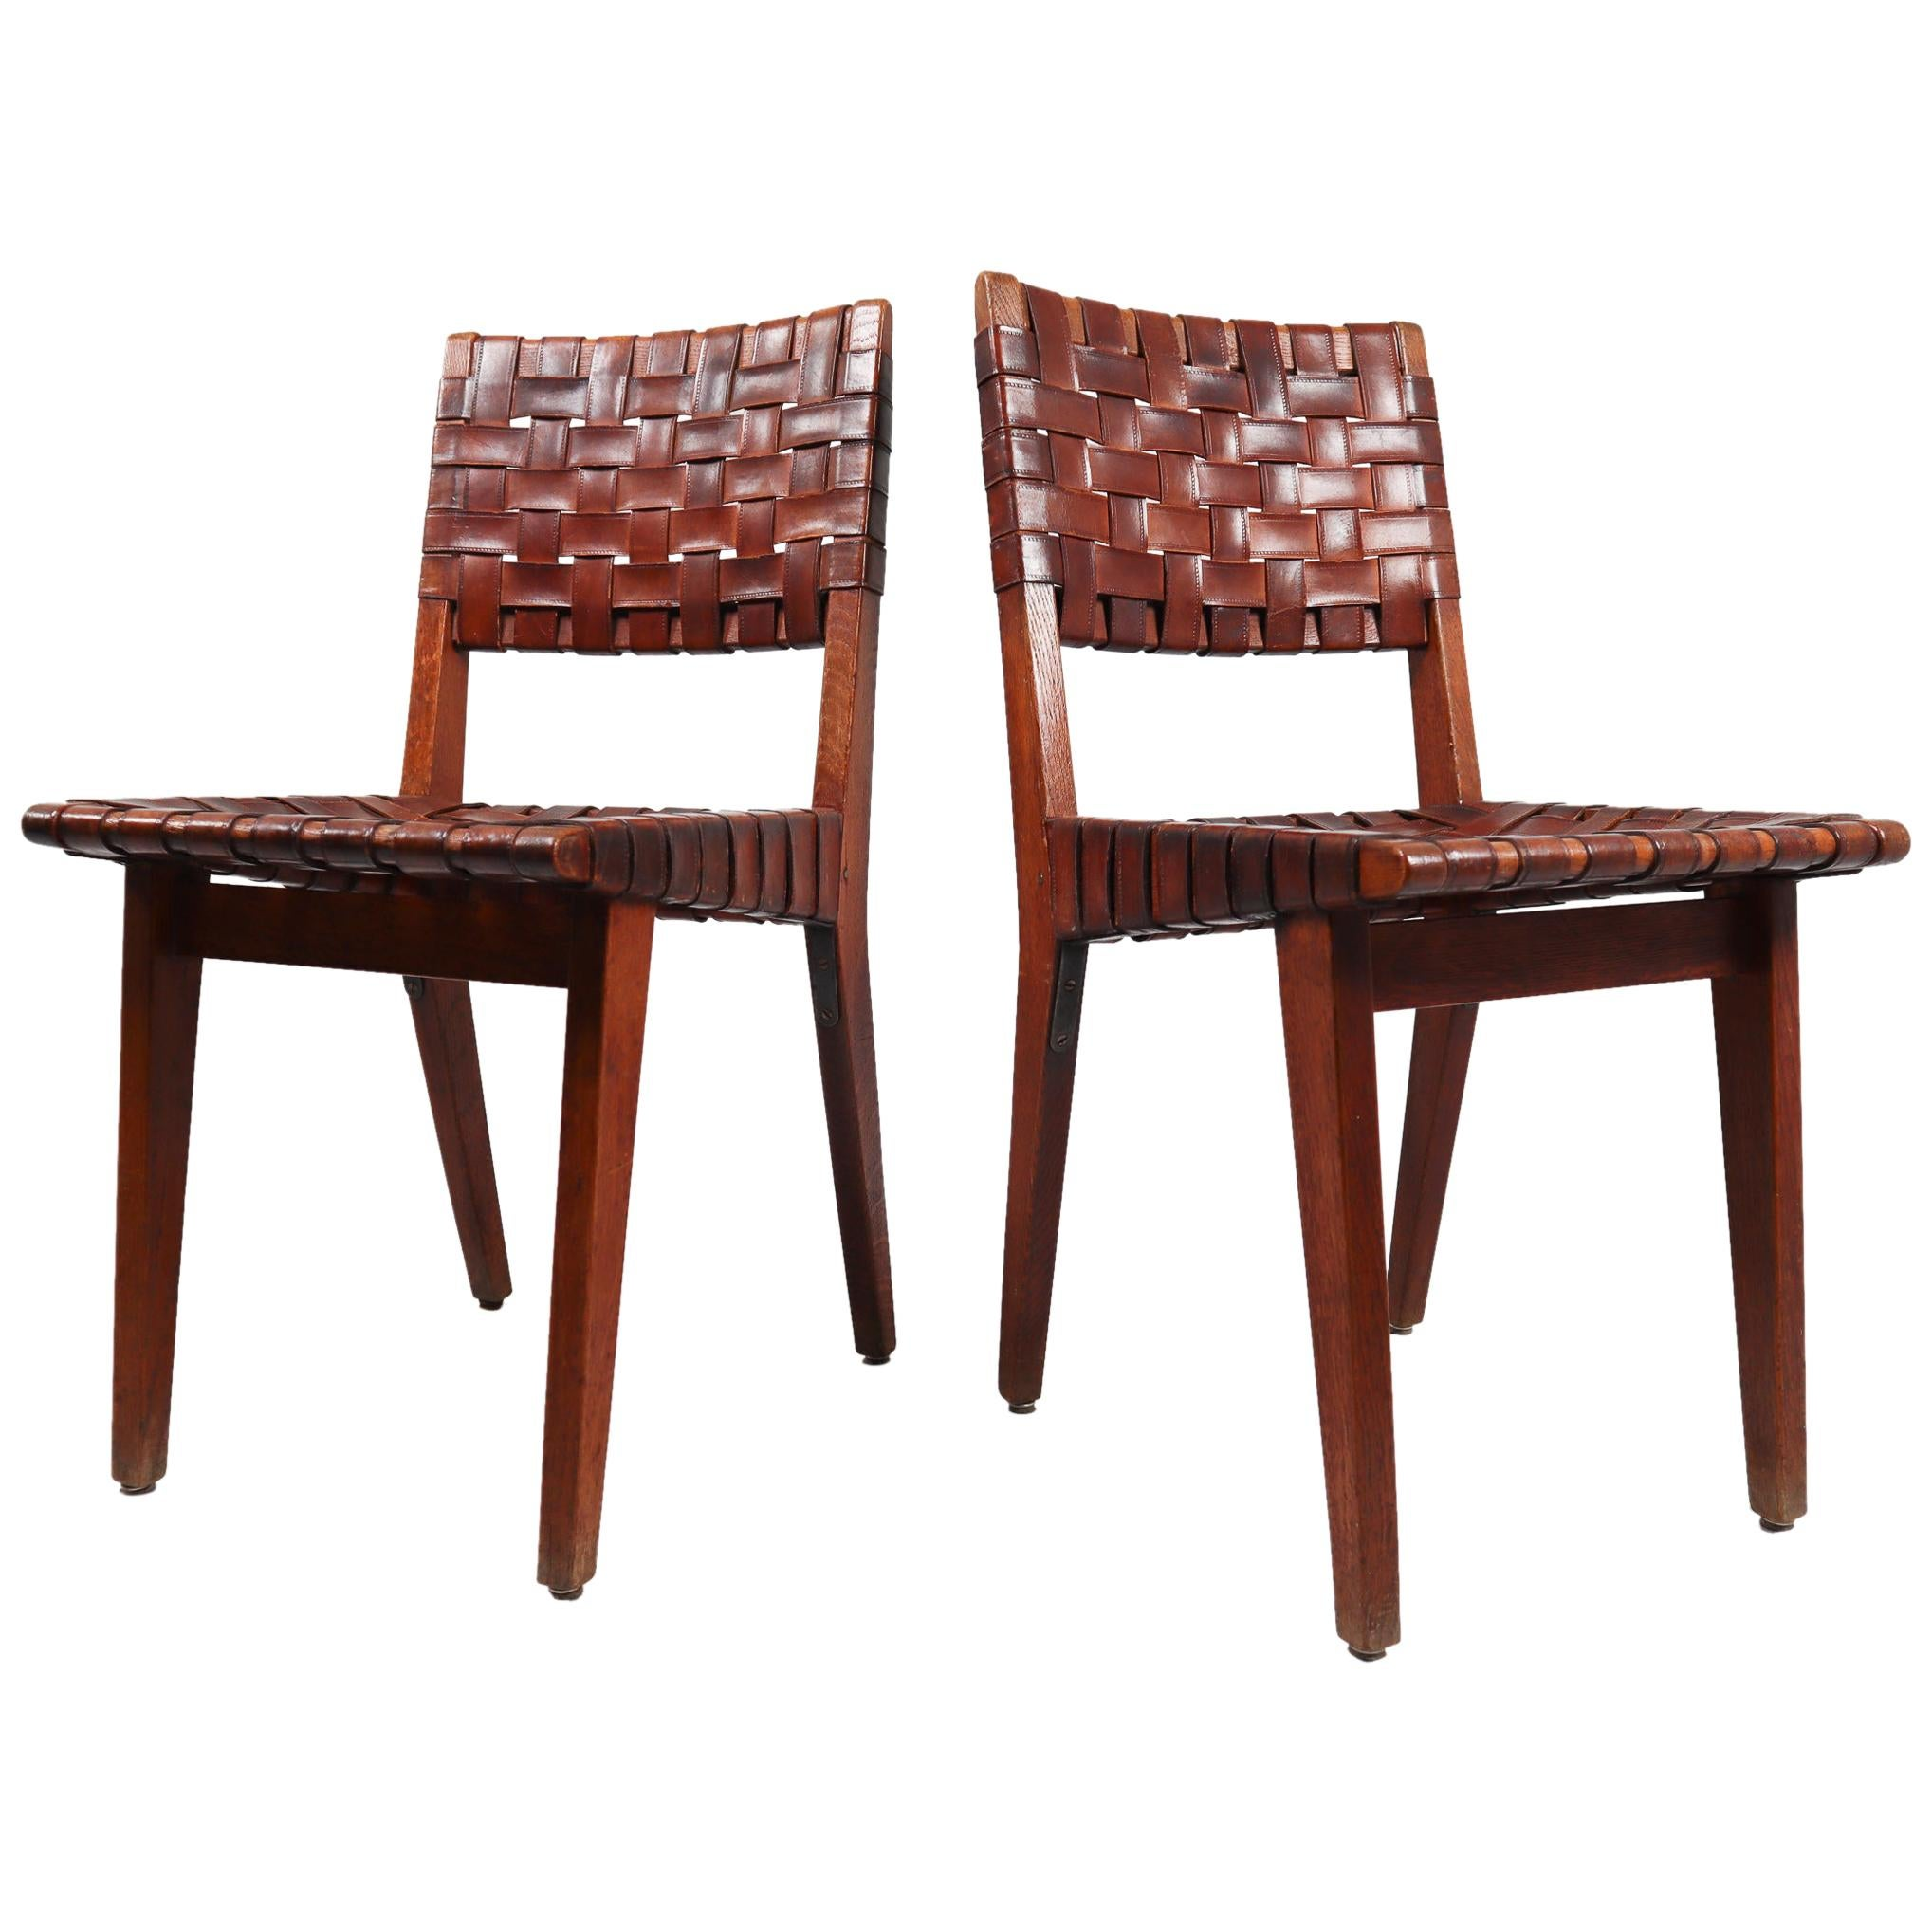 Early Woven Leather Side Chairs Model No. 666 by Jens Risom for Knoll, 1940s